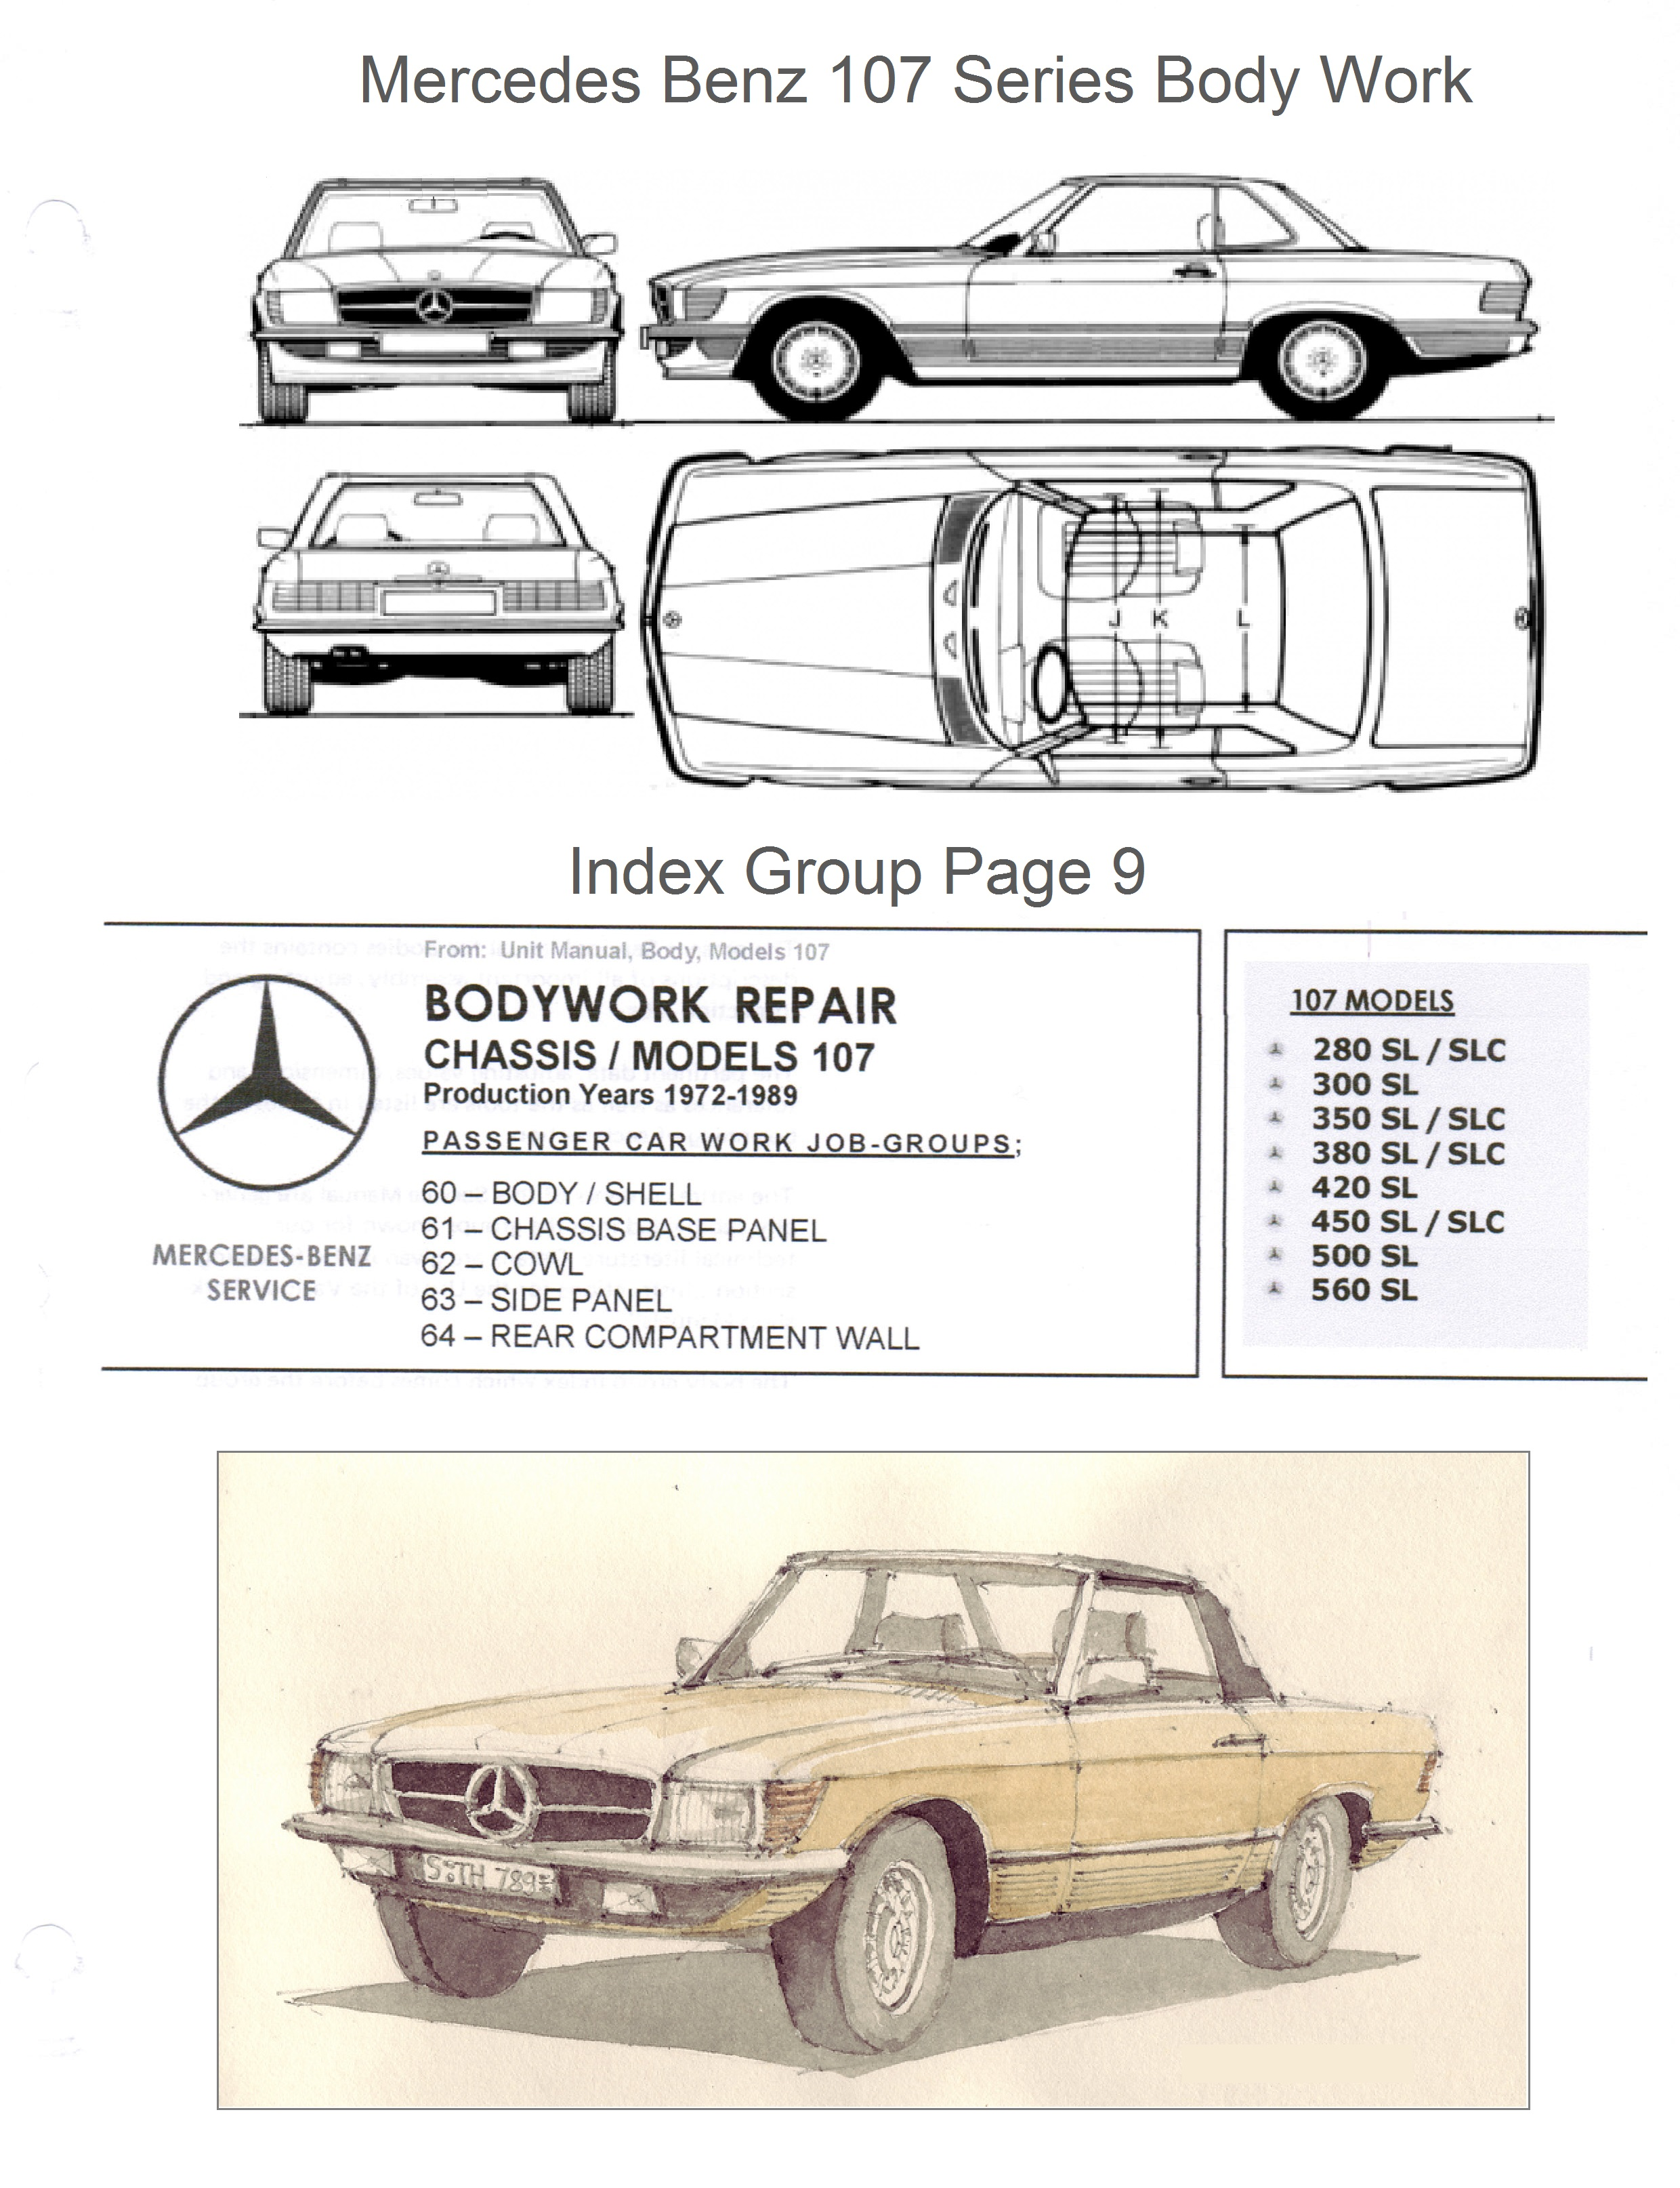 mercedes benz 107 bodywork and frame manual on cd 380 380sl 450 rh mb107 com